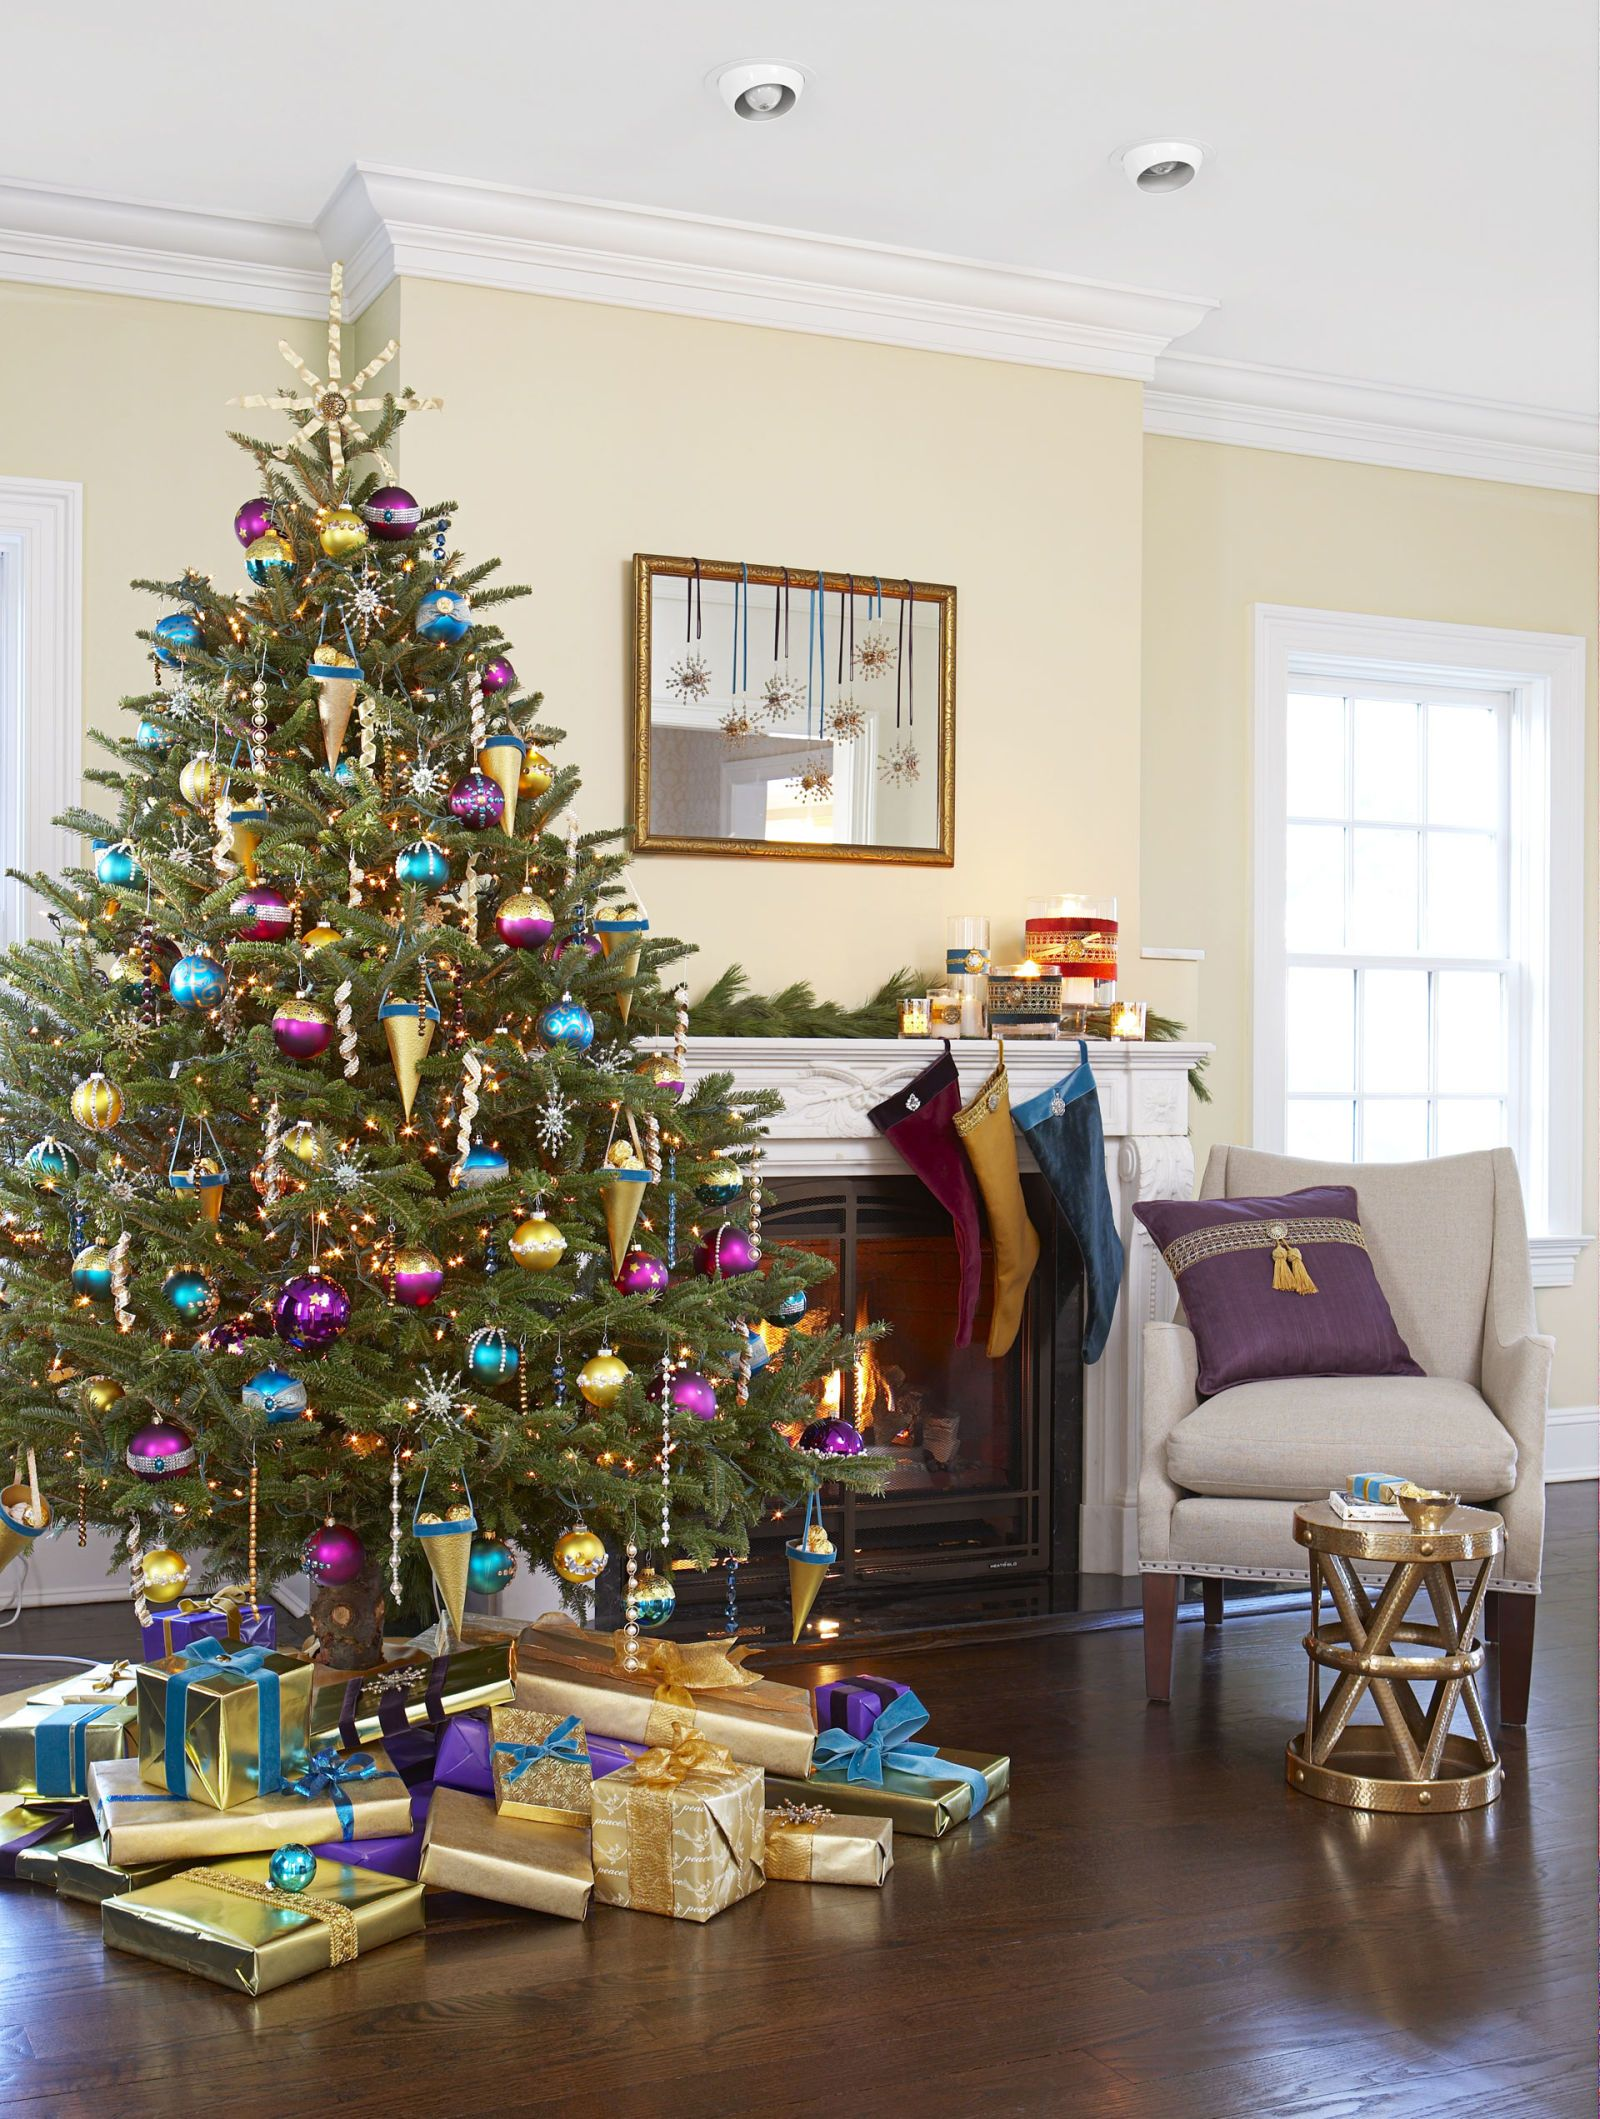 50 christmas tree decoration ideas pictures of beautiful christmas trees - Purple And Gold Christmas Tree Decorations